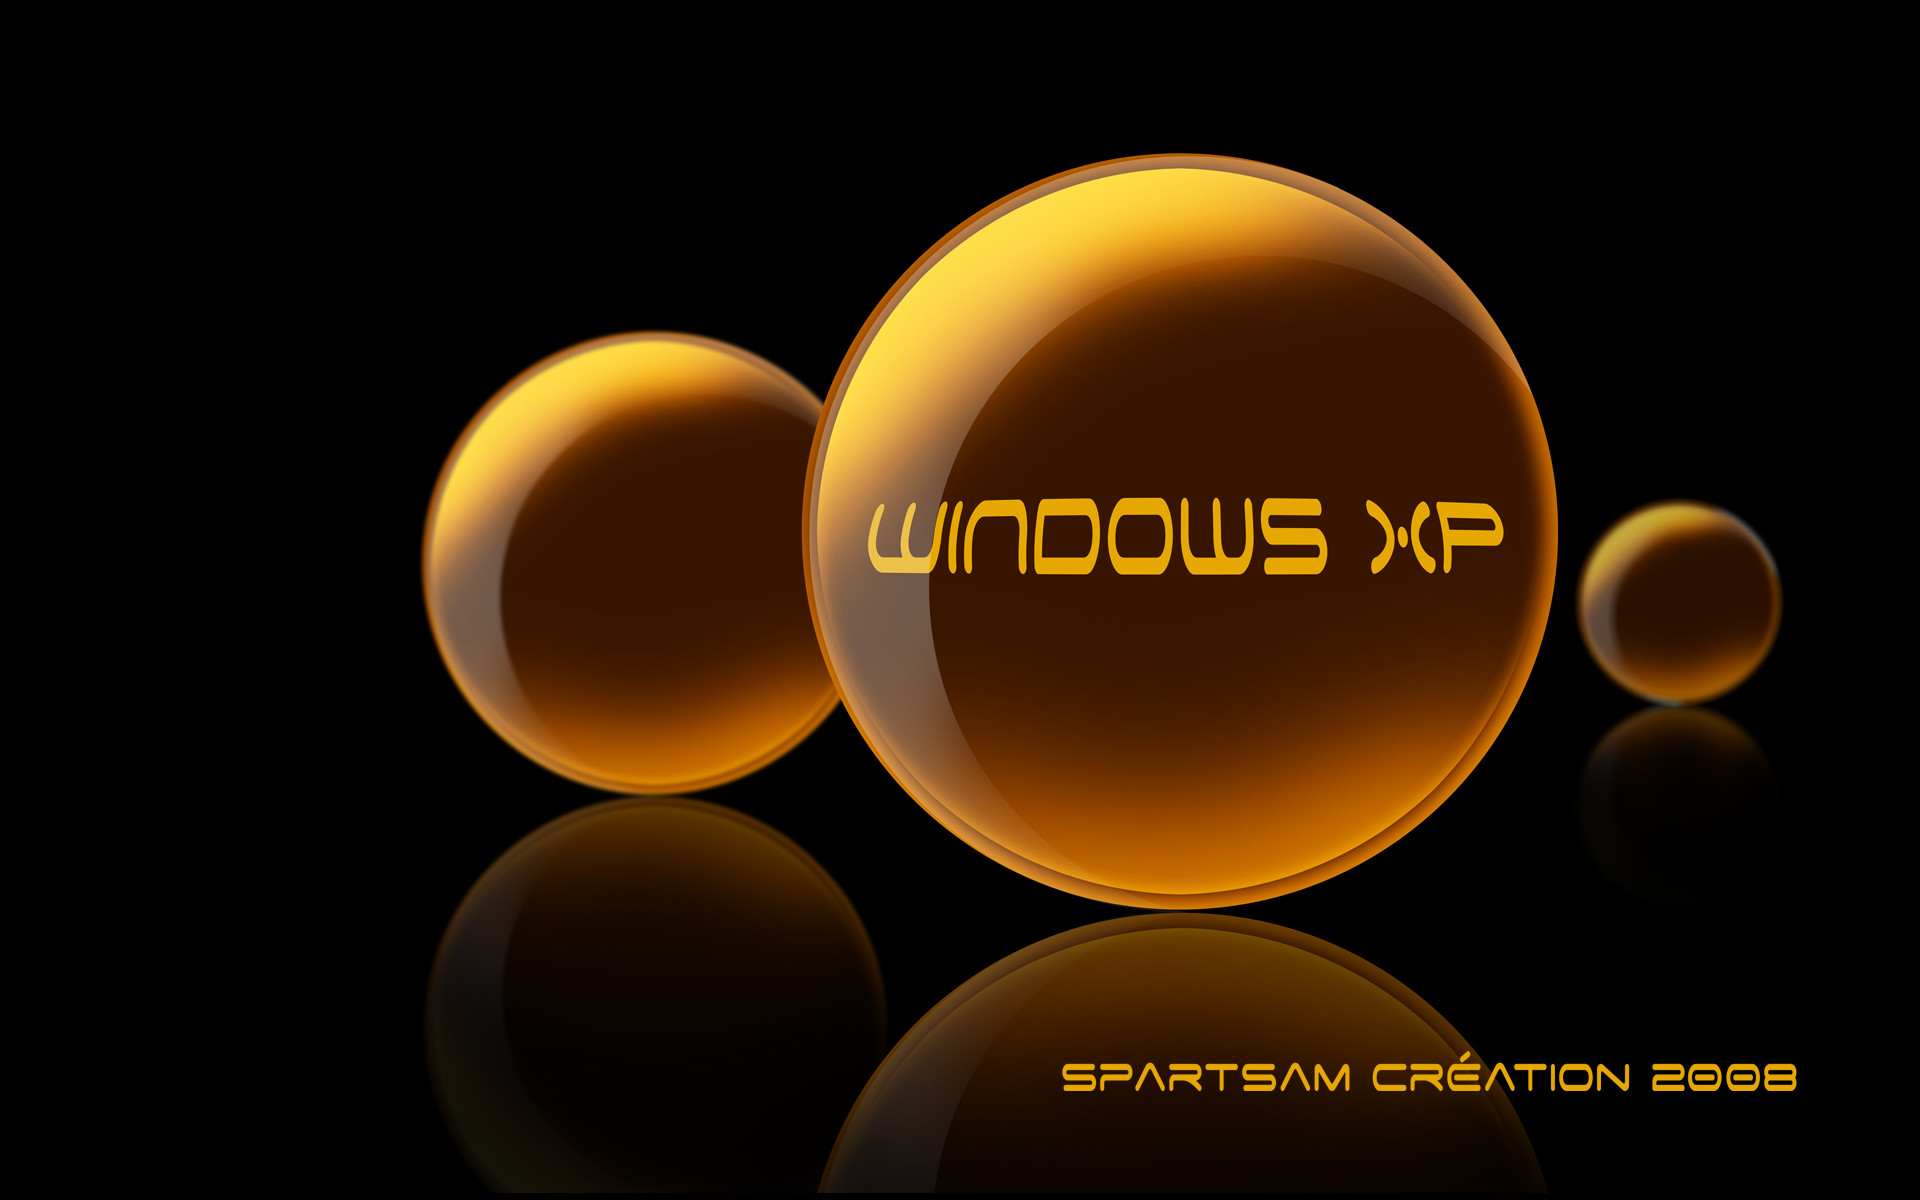 Windows Xp HD Wallpapers (49+ background pictures)